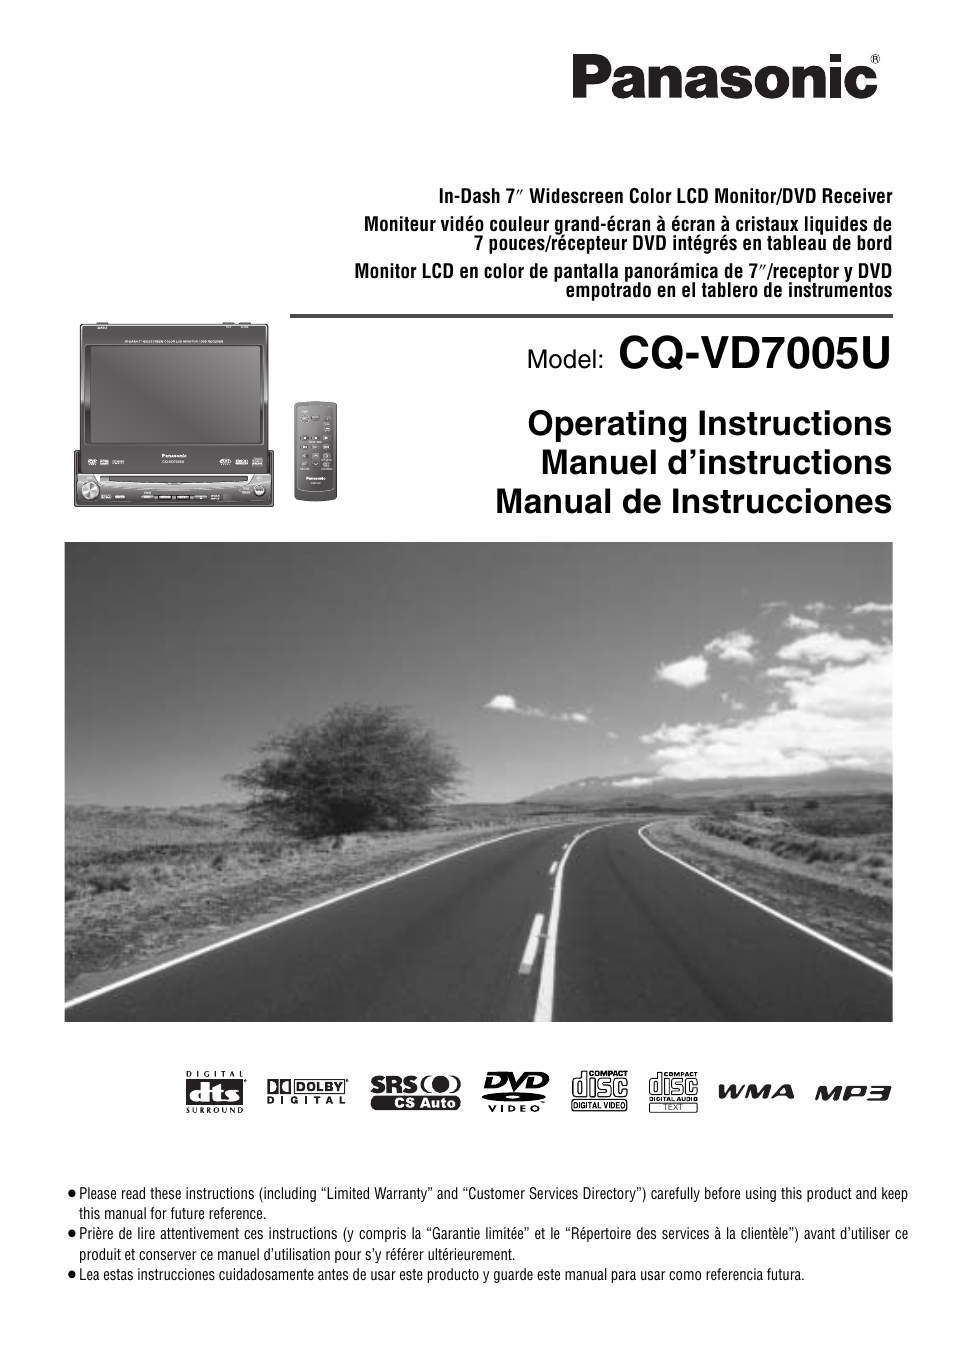 Panasonic Cq Vd7001u Wiring Diagram 35 Images C1301u Vd7005u Page1 User Manual 52 Pages